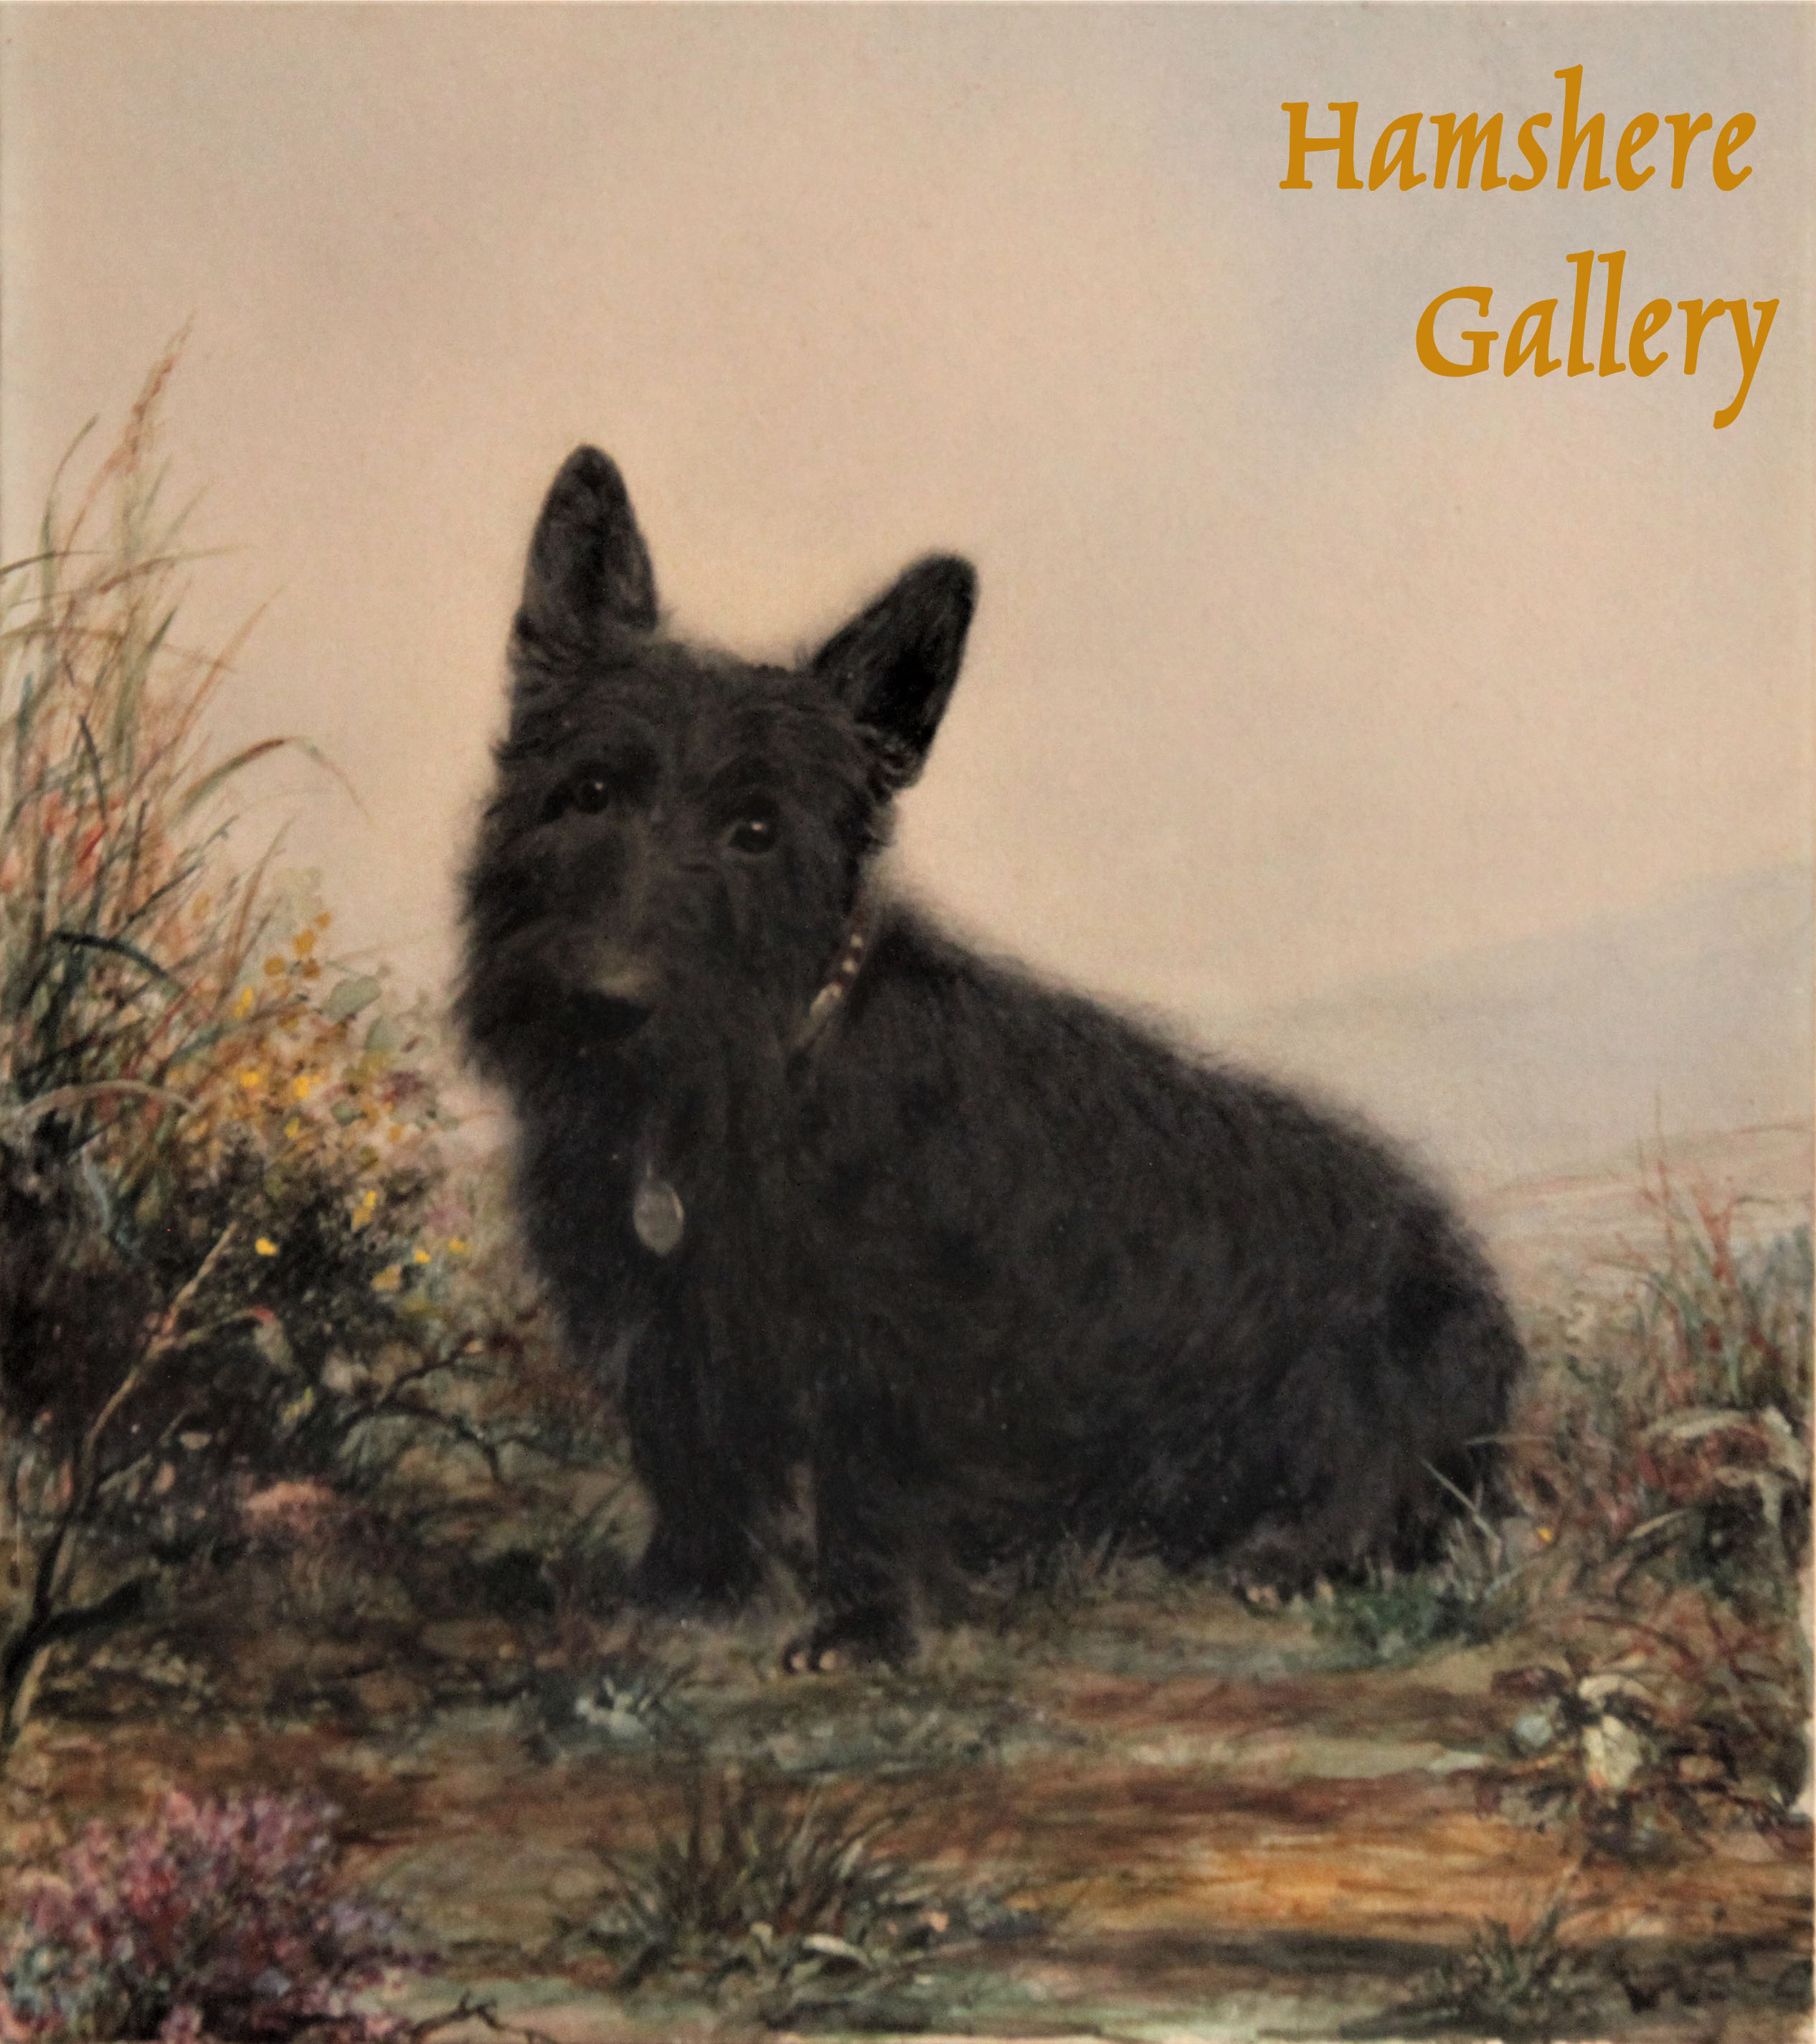 Click to see full size: Scottish Terrier watercolour by Marguerite Kirmse (English, 1885 -1954)- Scottish Terrier watercolour by Marguerite Kirmse (English, 1885 -1954)